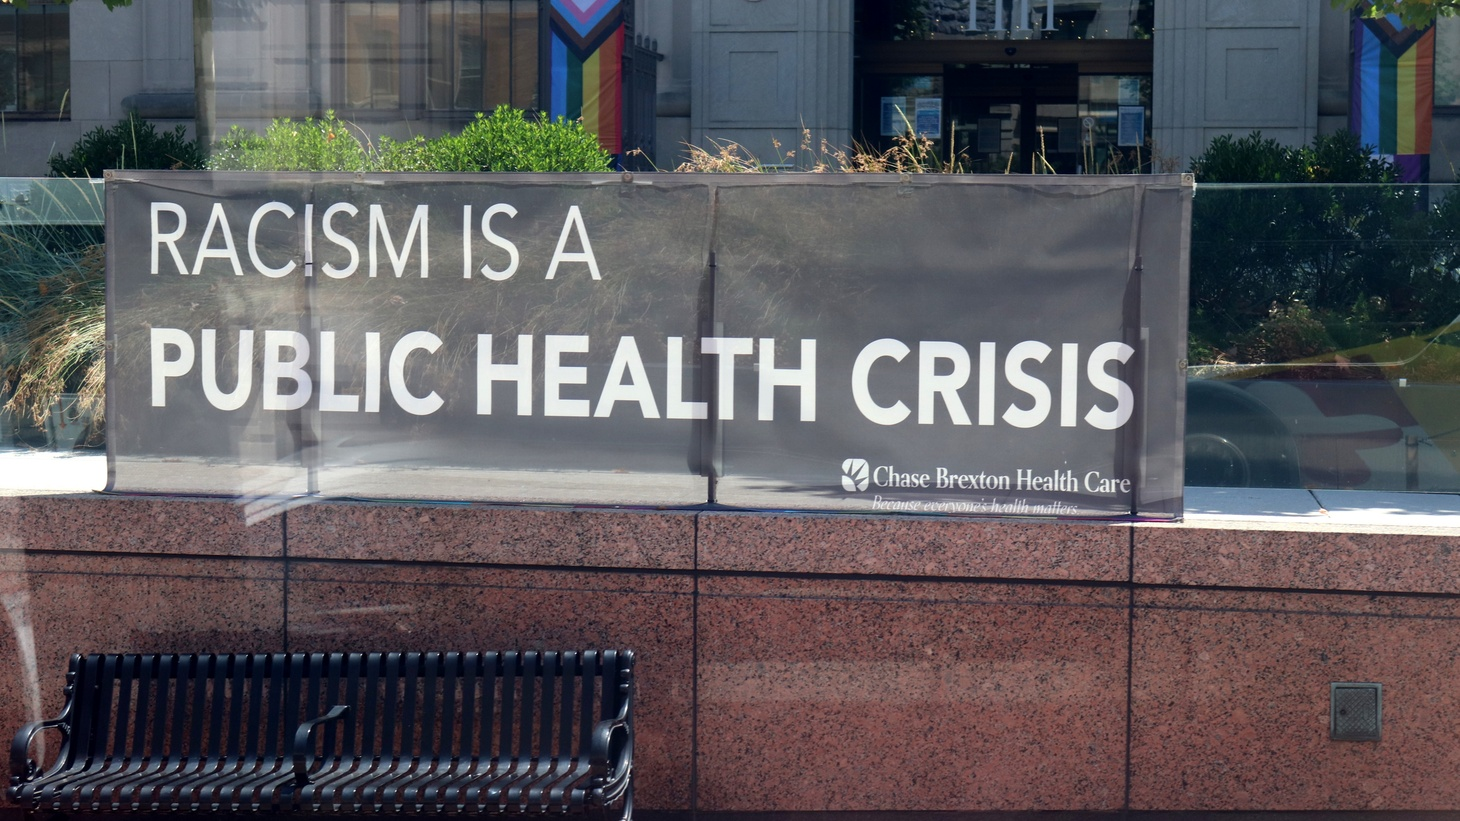 """A banner says """"RACISM IS A PUBLIC HEALTH CRISIS,"""" Baltimore, Maryland, July 9, 2020."""